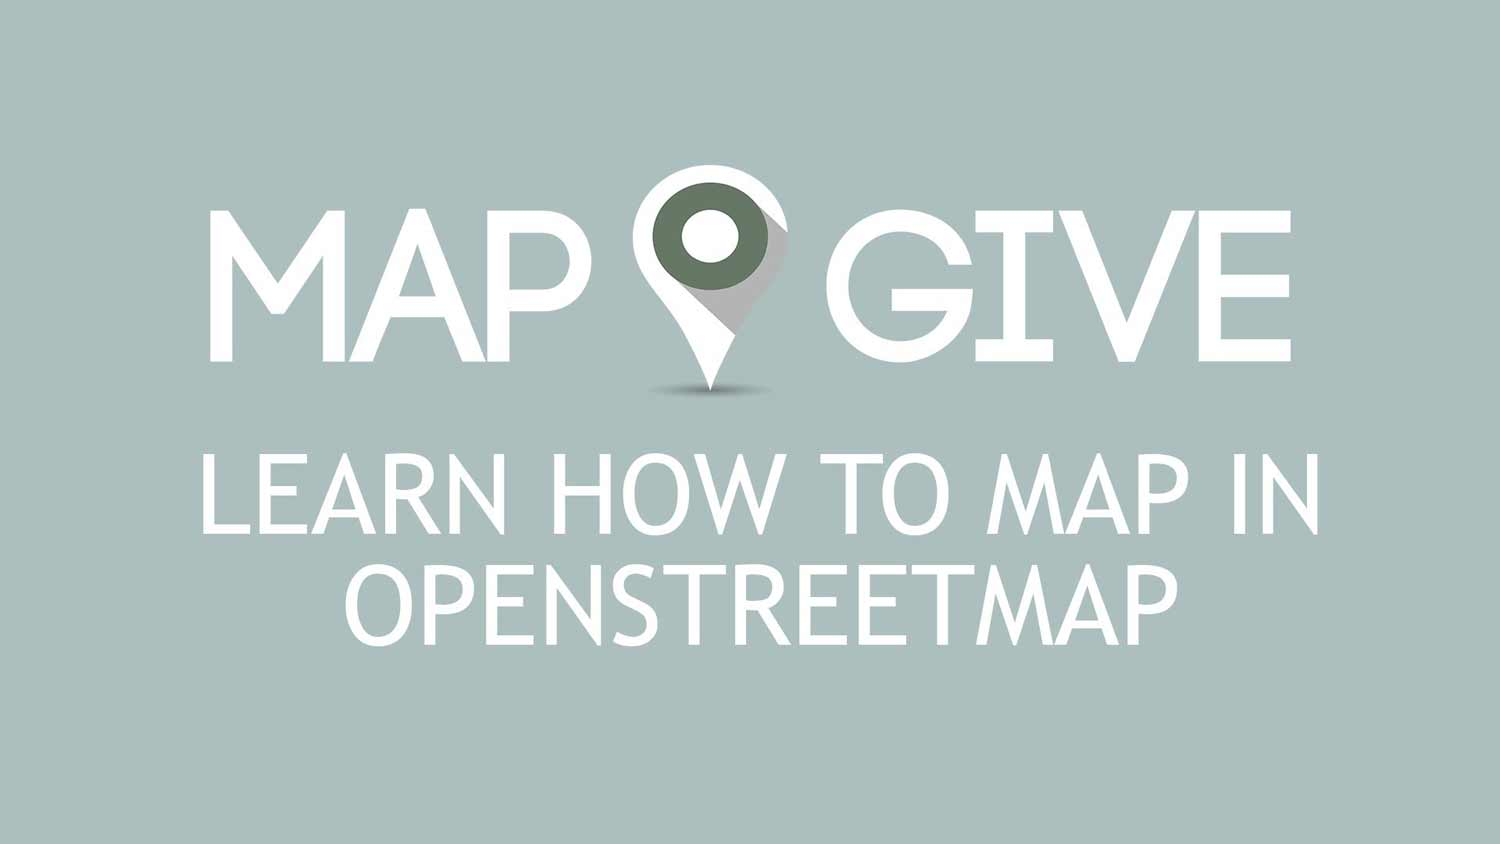 YouTube embedded video: Learn How to Map in OpenStreetMap. Press space or enter to play video.